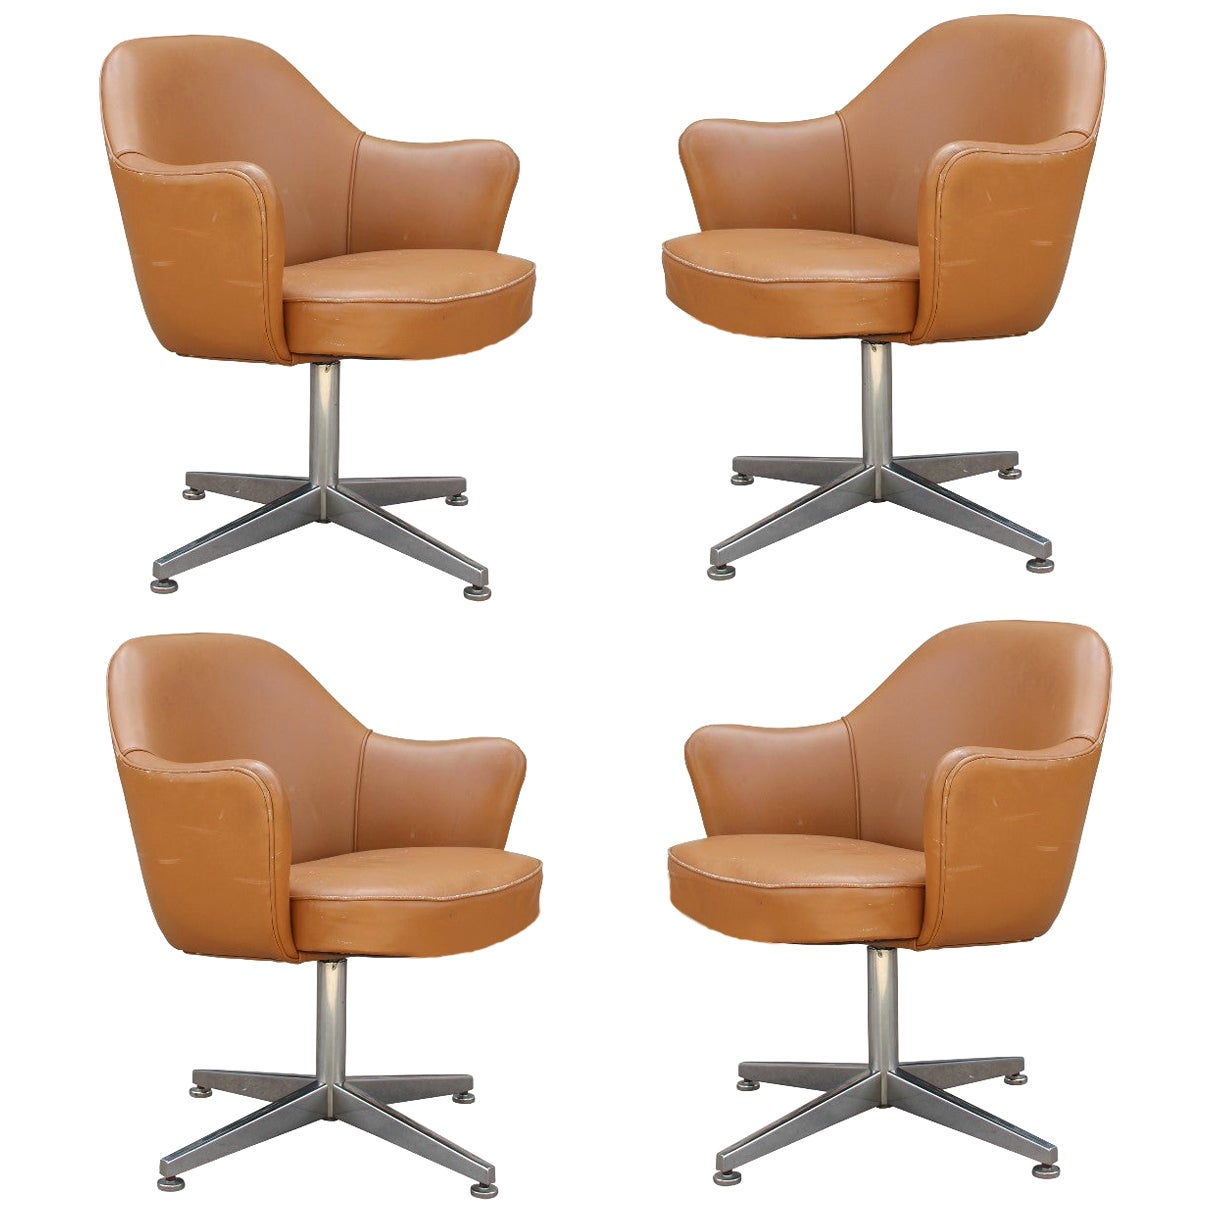 Modern Knoll Saarinen Attributed Executive Armchair in Saddle Leather